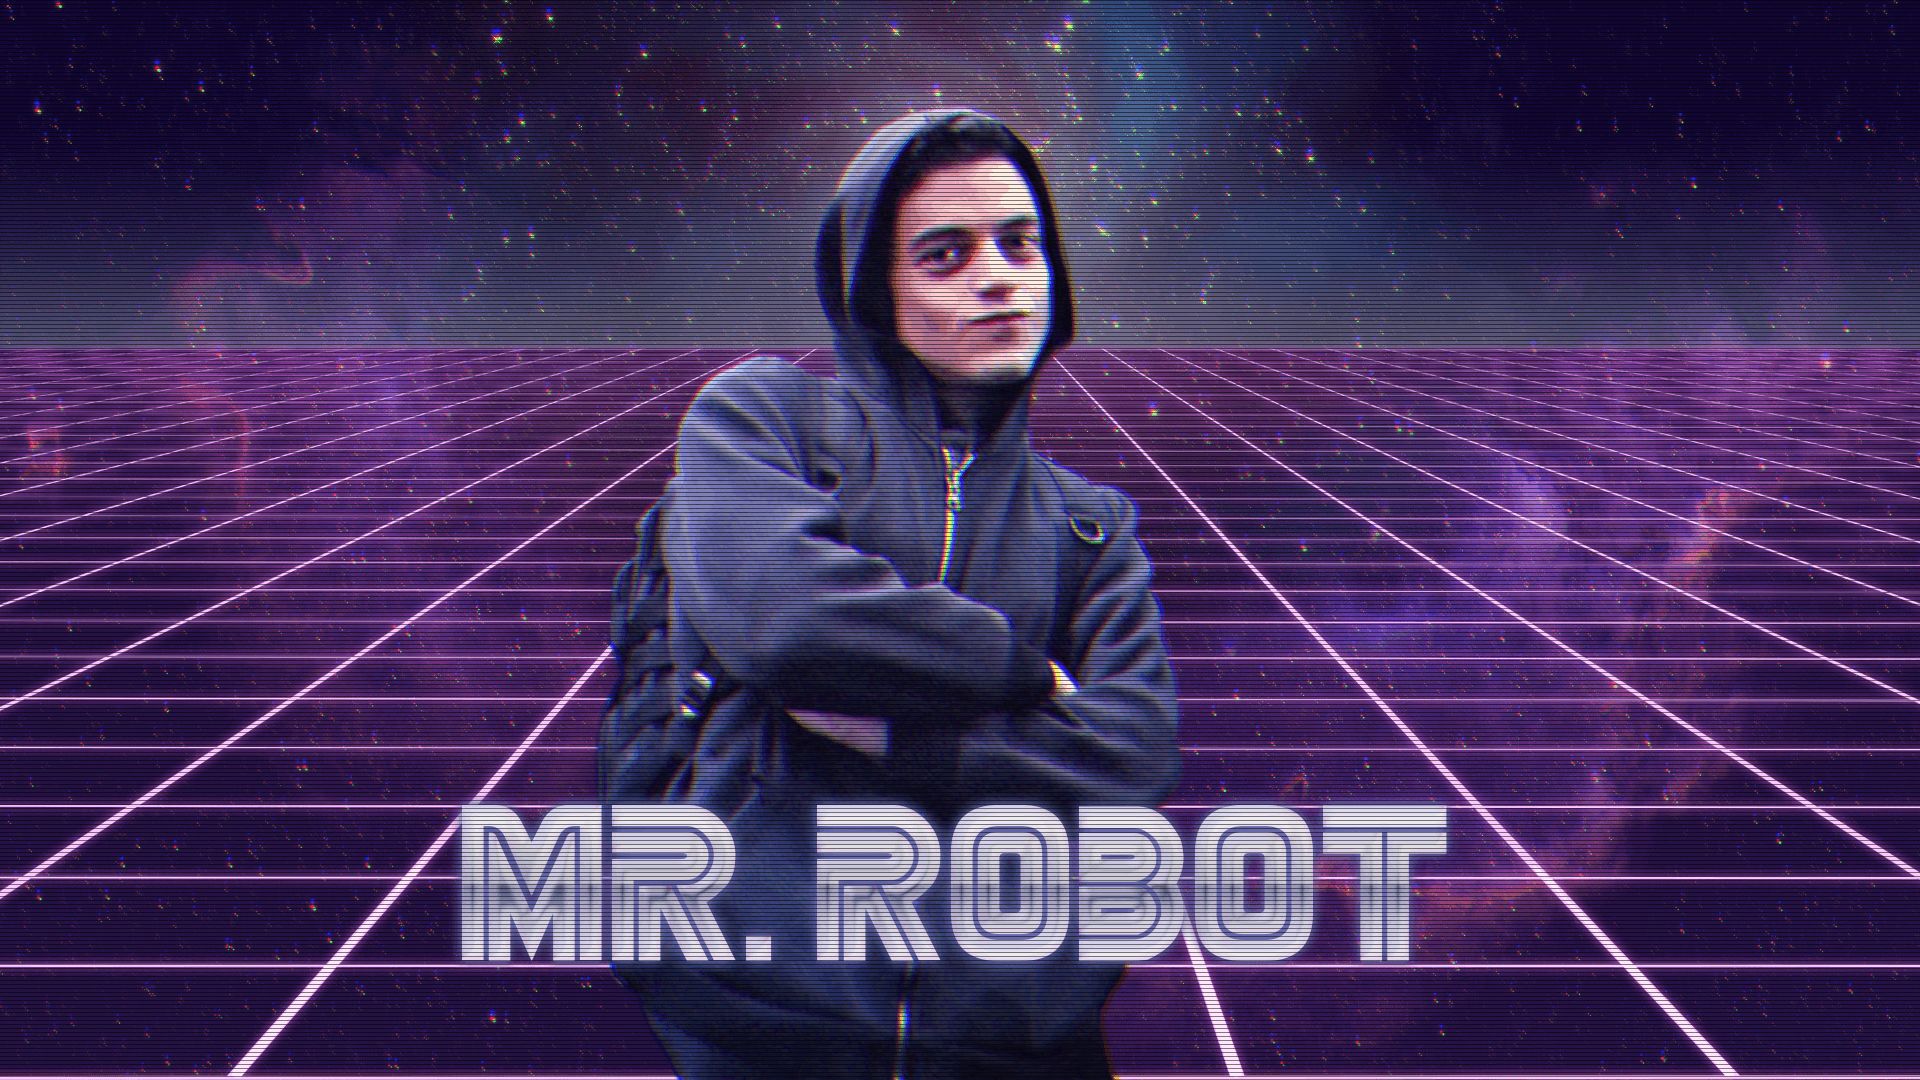 20576 mr robot hd wallpapers